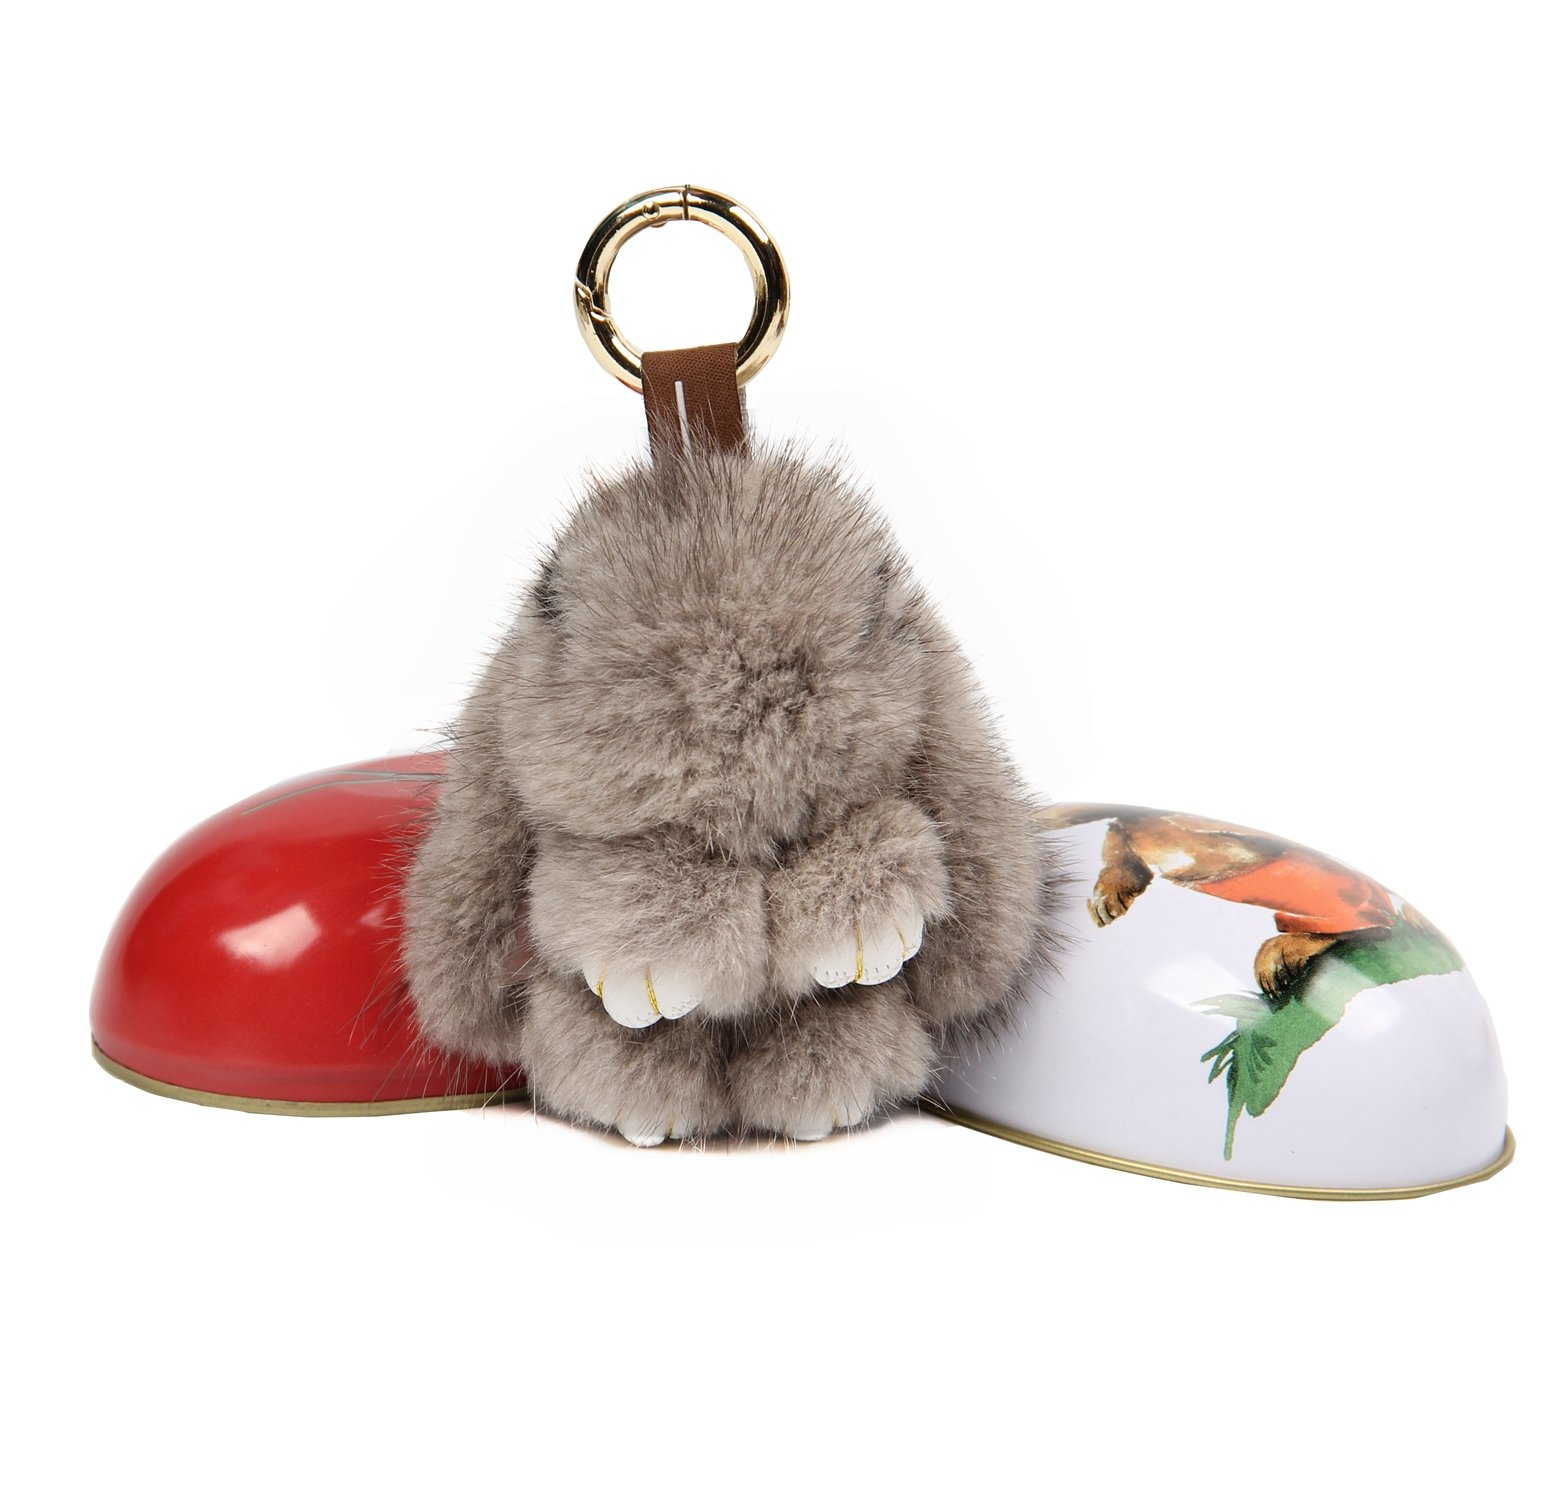 YISEVEN Easter Eggs Stuffed Rabbit Keychain Toy- Soft and Fuzzy Mini Plush Bunny Key Chain-Cute Fluffy Bunnies Floppy Furry Animal Doll Gift for Girl Women Purse Bag Car Charm (3.5-Inch) Gray by YISEVEN